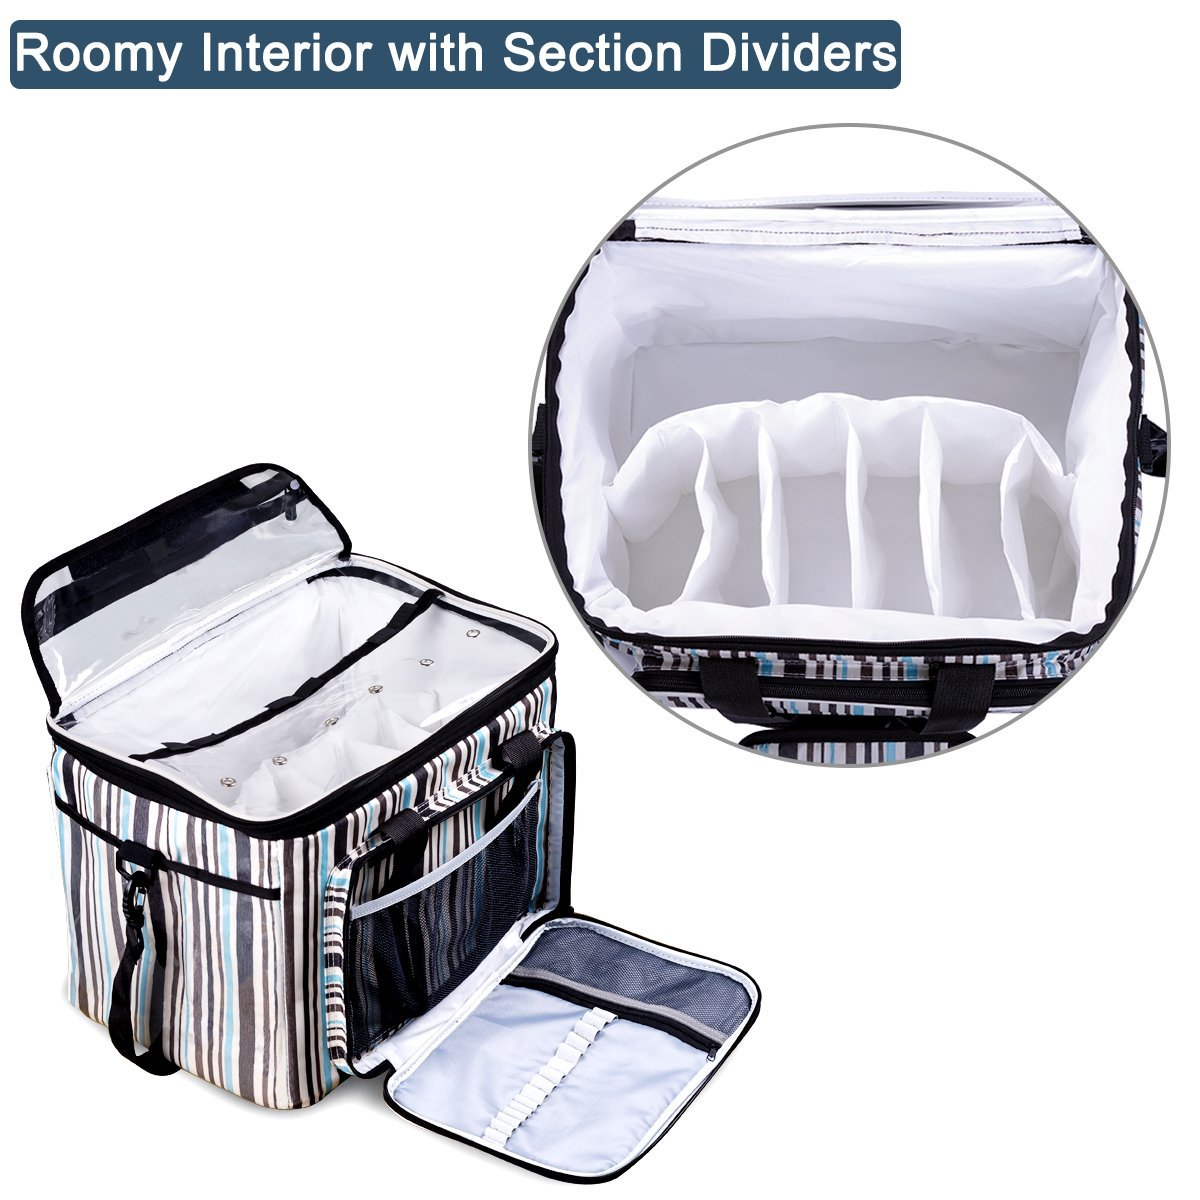 BONTIME Knitting Bag - High Capacity Striped Yarn Storage Tote Bag,Project Bags with Roomy Interior,Great for Organizing Everything You Need for Each of Projects,Large by BONTIME (Image #6)